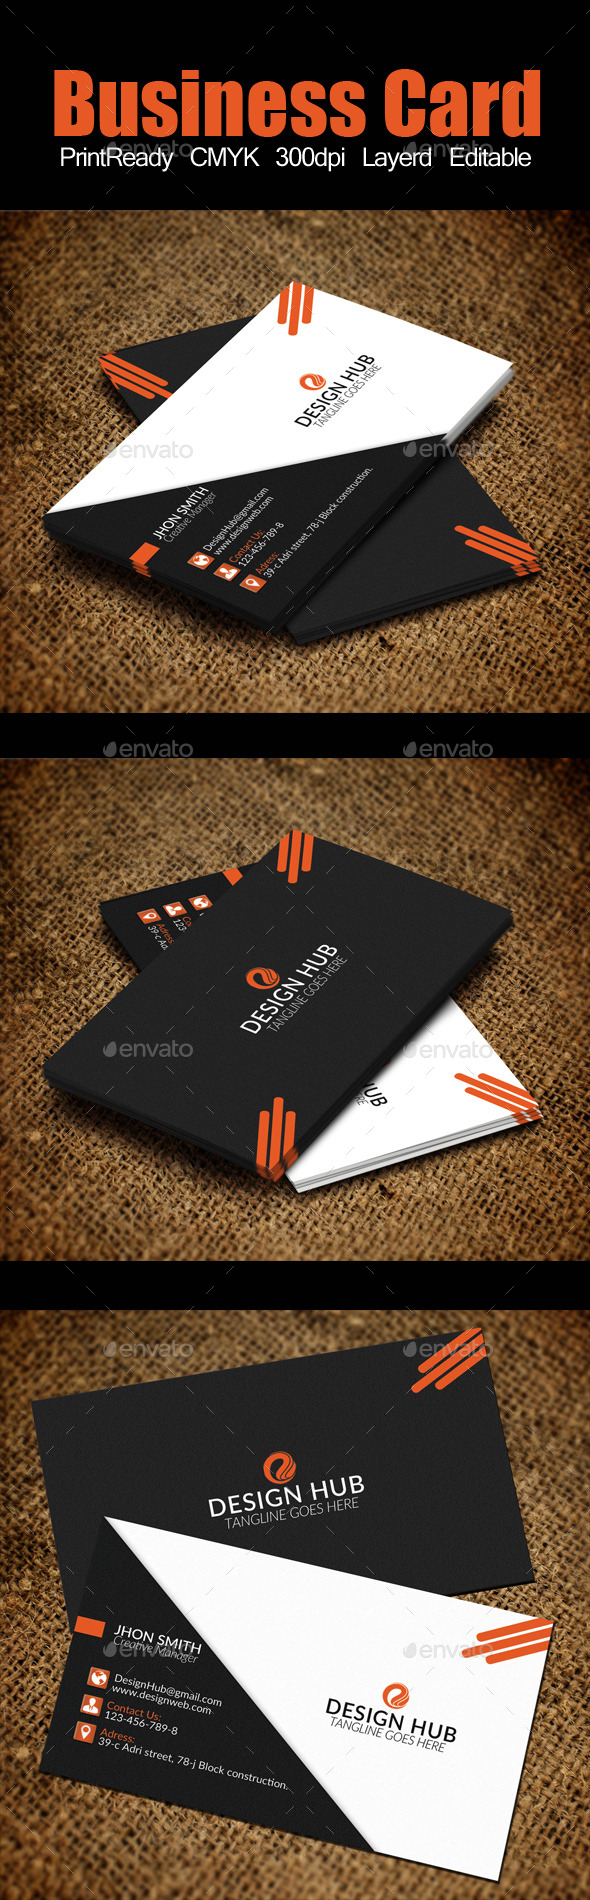 GraphicRiver Business Card Template 11929568